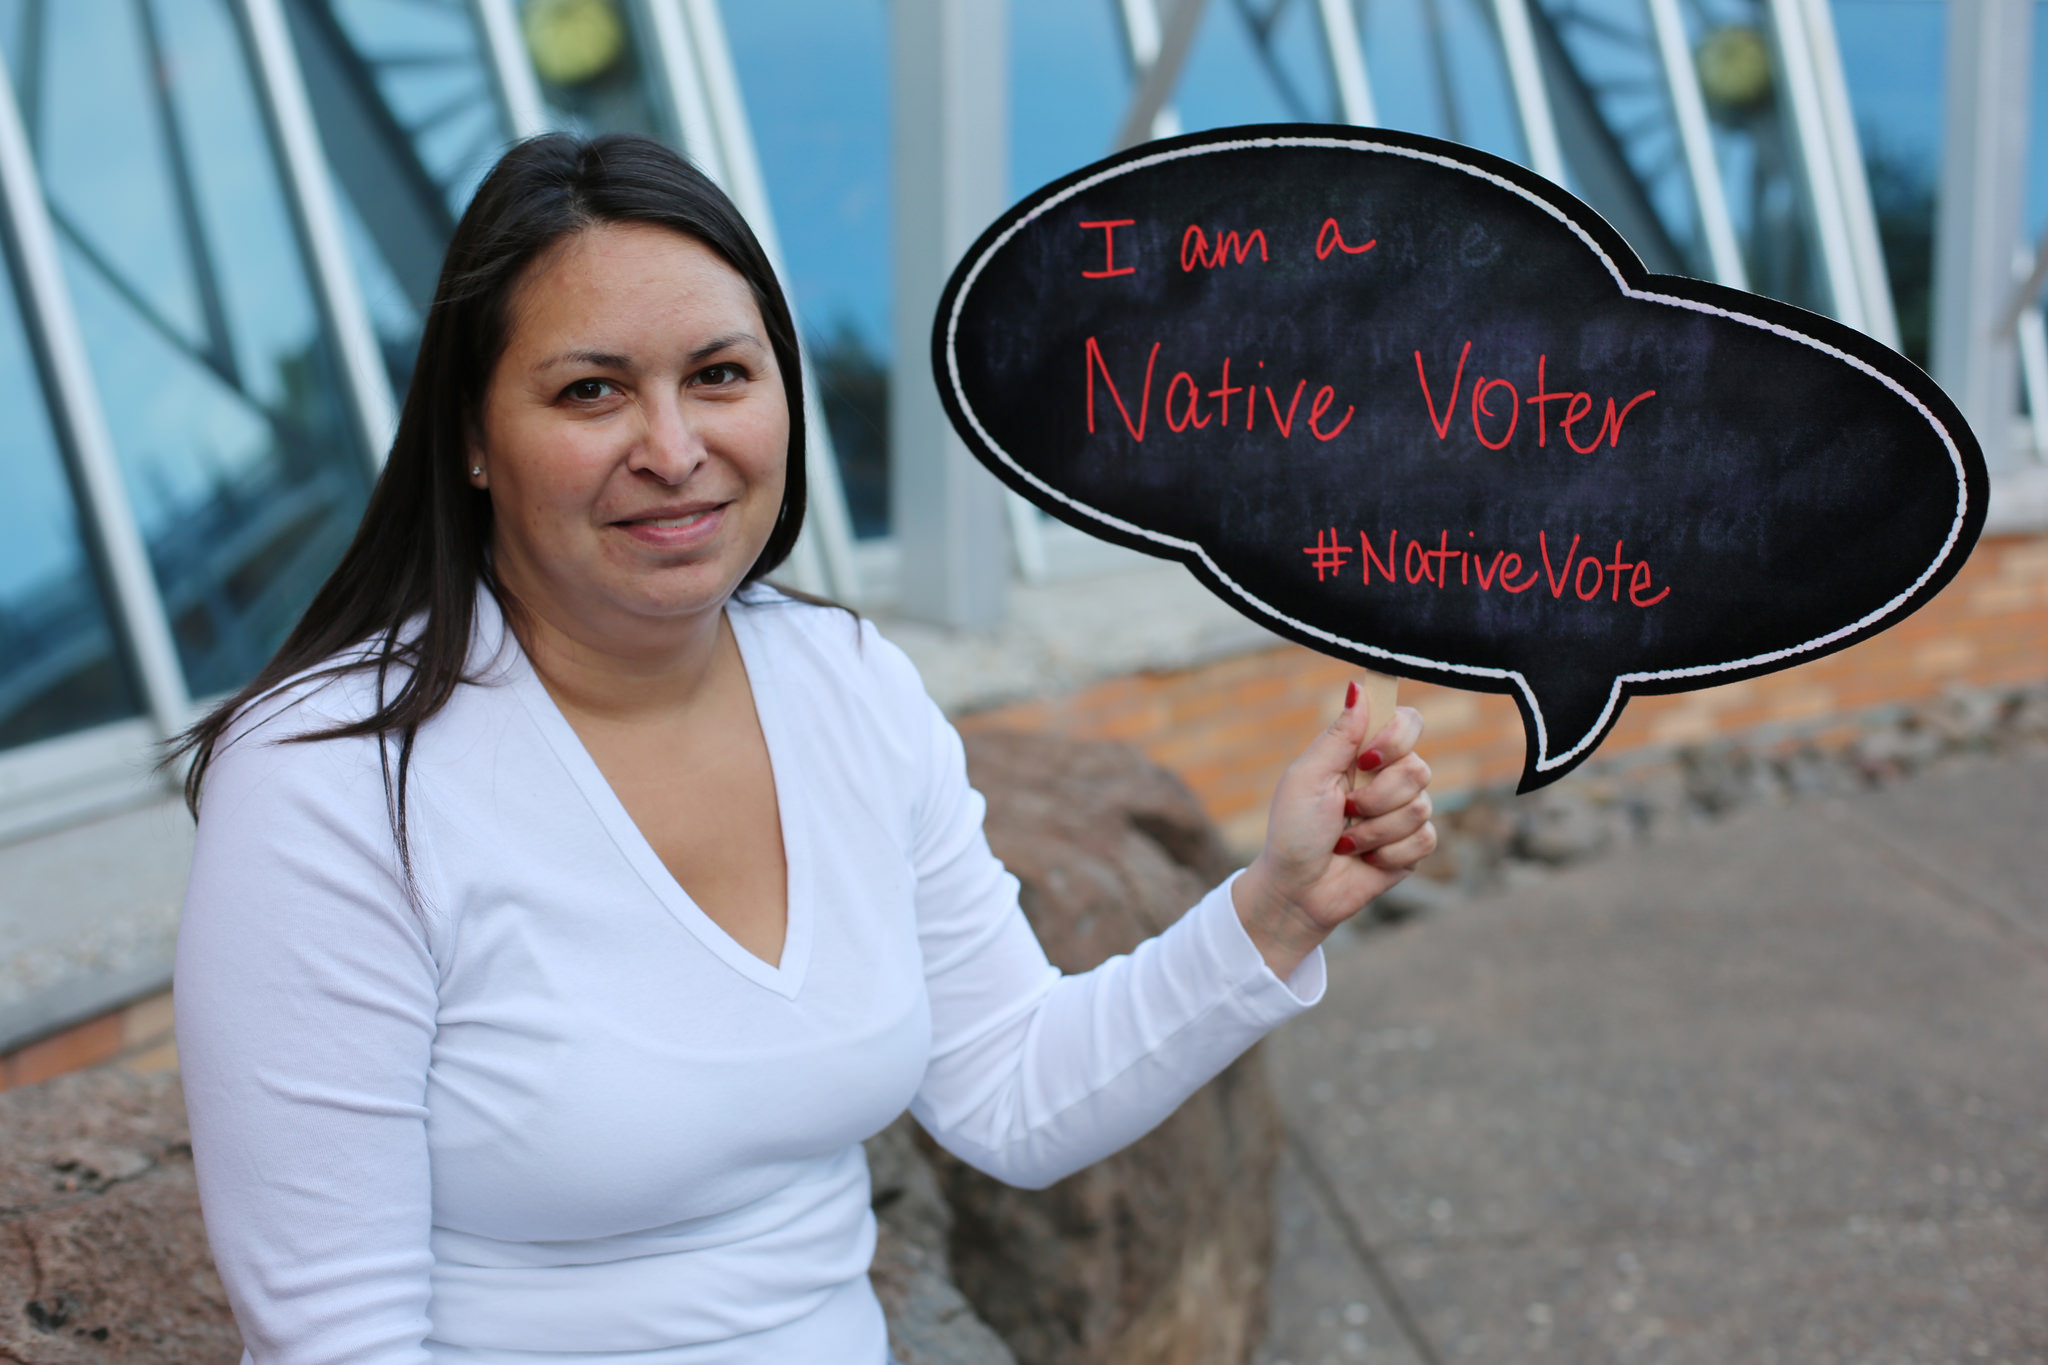 5 obstacles for Native voters in the November midterms